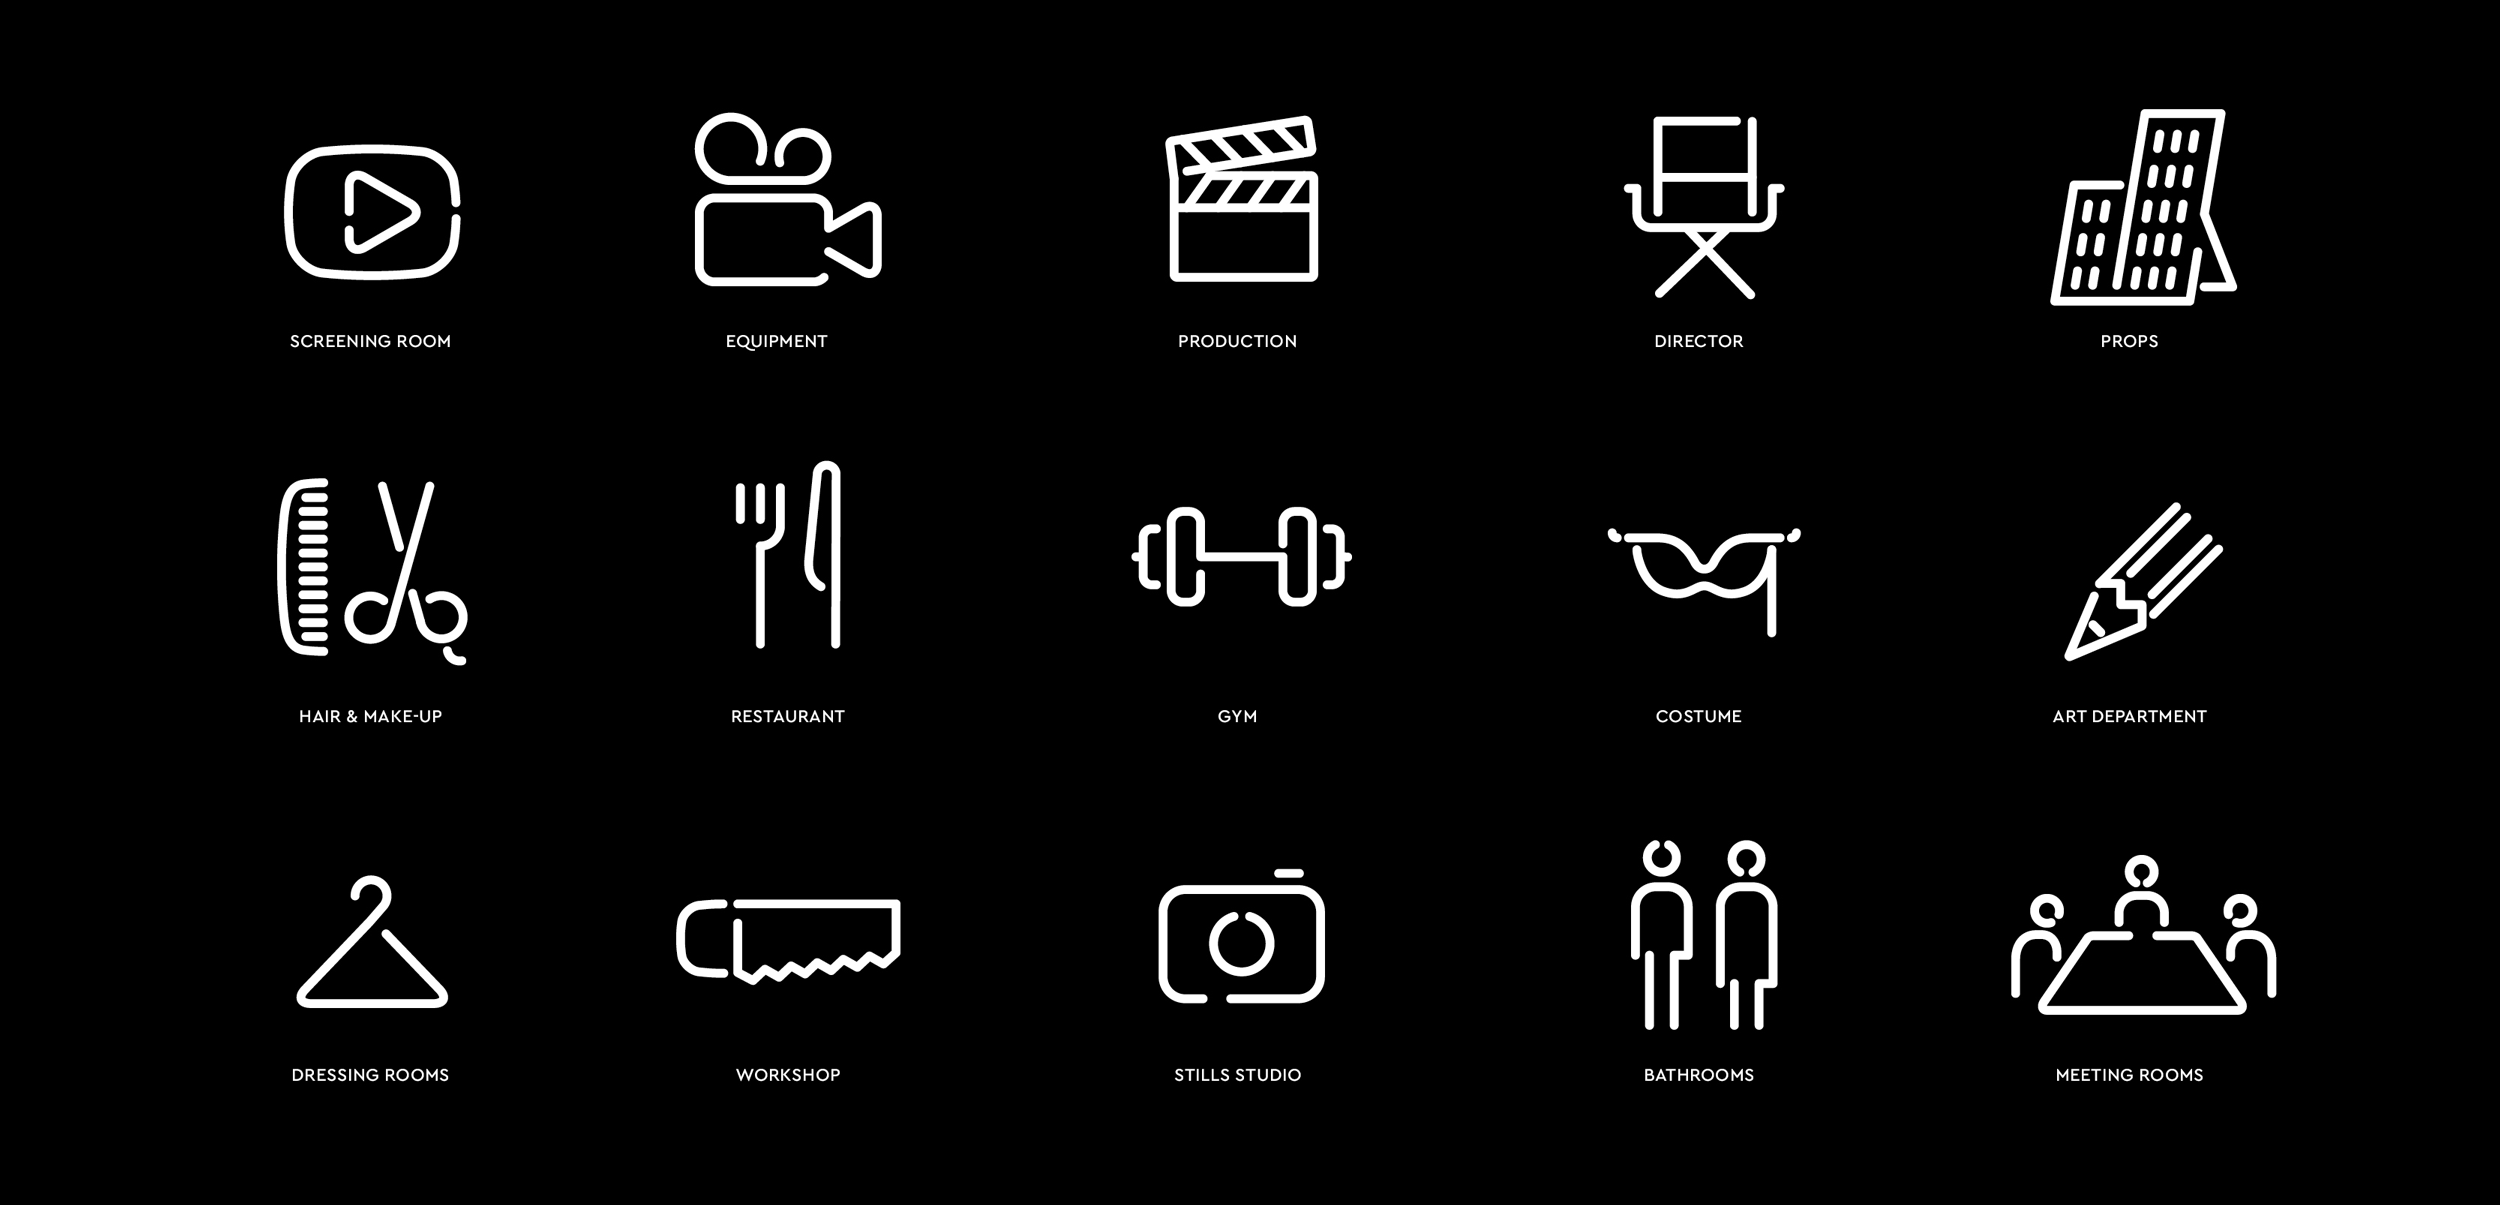 Iconography design with consistent branding identity for Troy Studios facilities